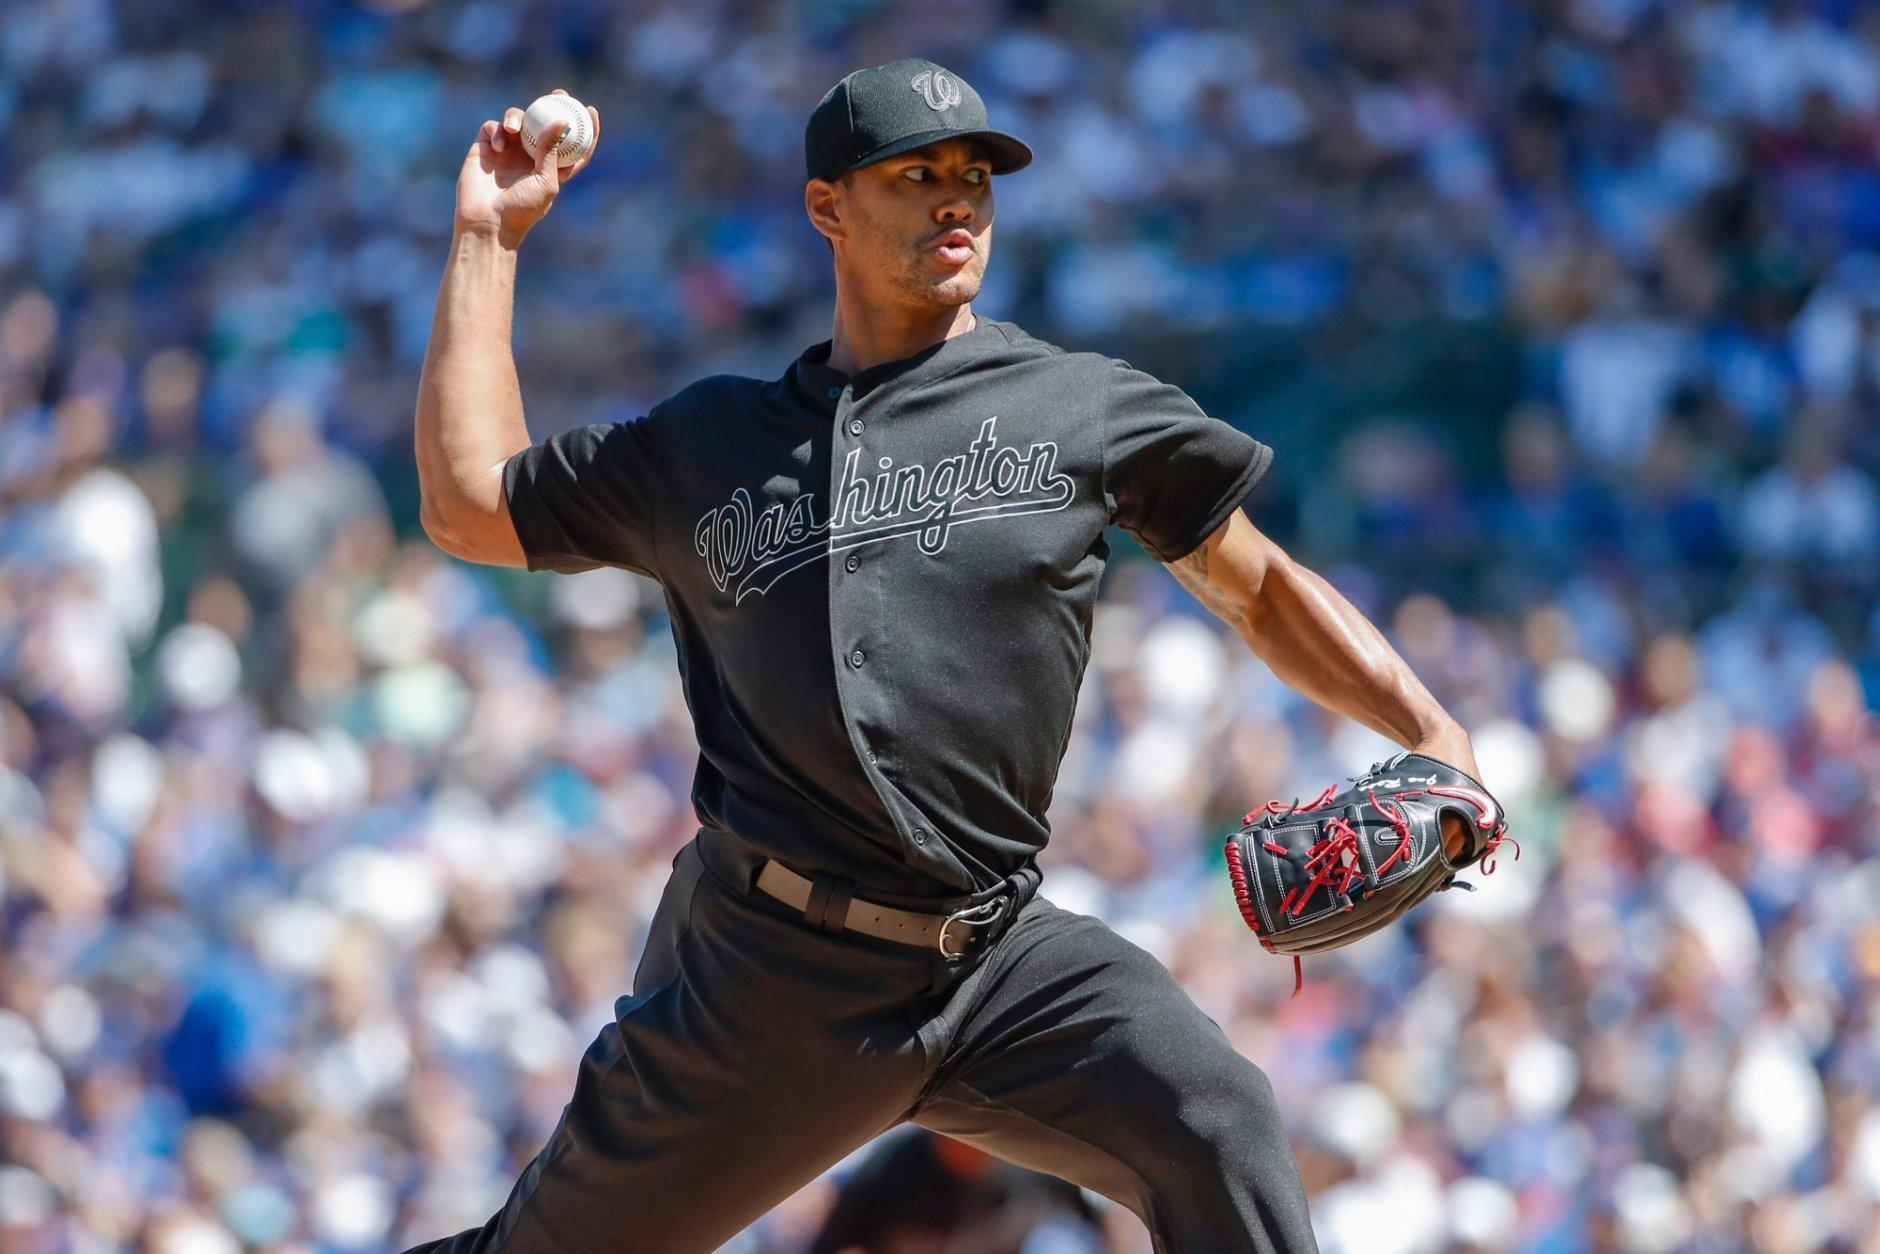 Washington Nationals starting pitcher Joe Ross delivers against the Chicago Cubs during the second inning of a baseball game, Saturday, Aug. 24, 2019, in Chicago. (AP Photo/Kamil Krzaczynski)